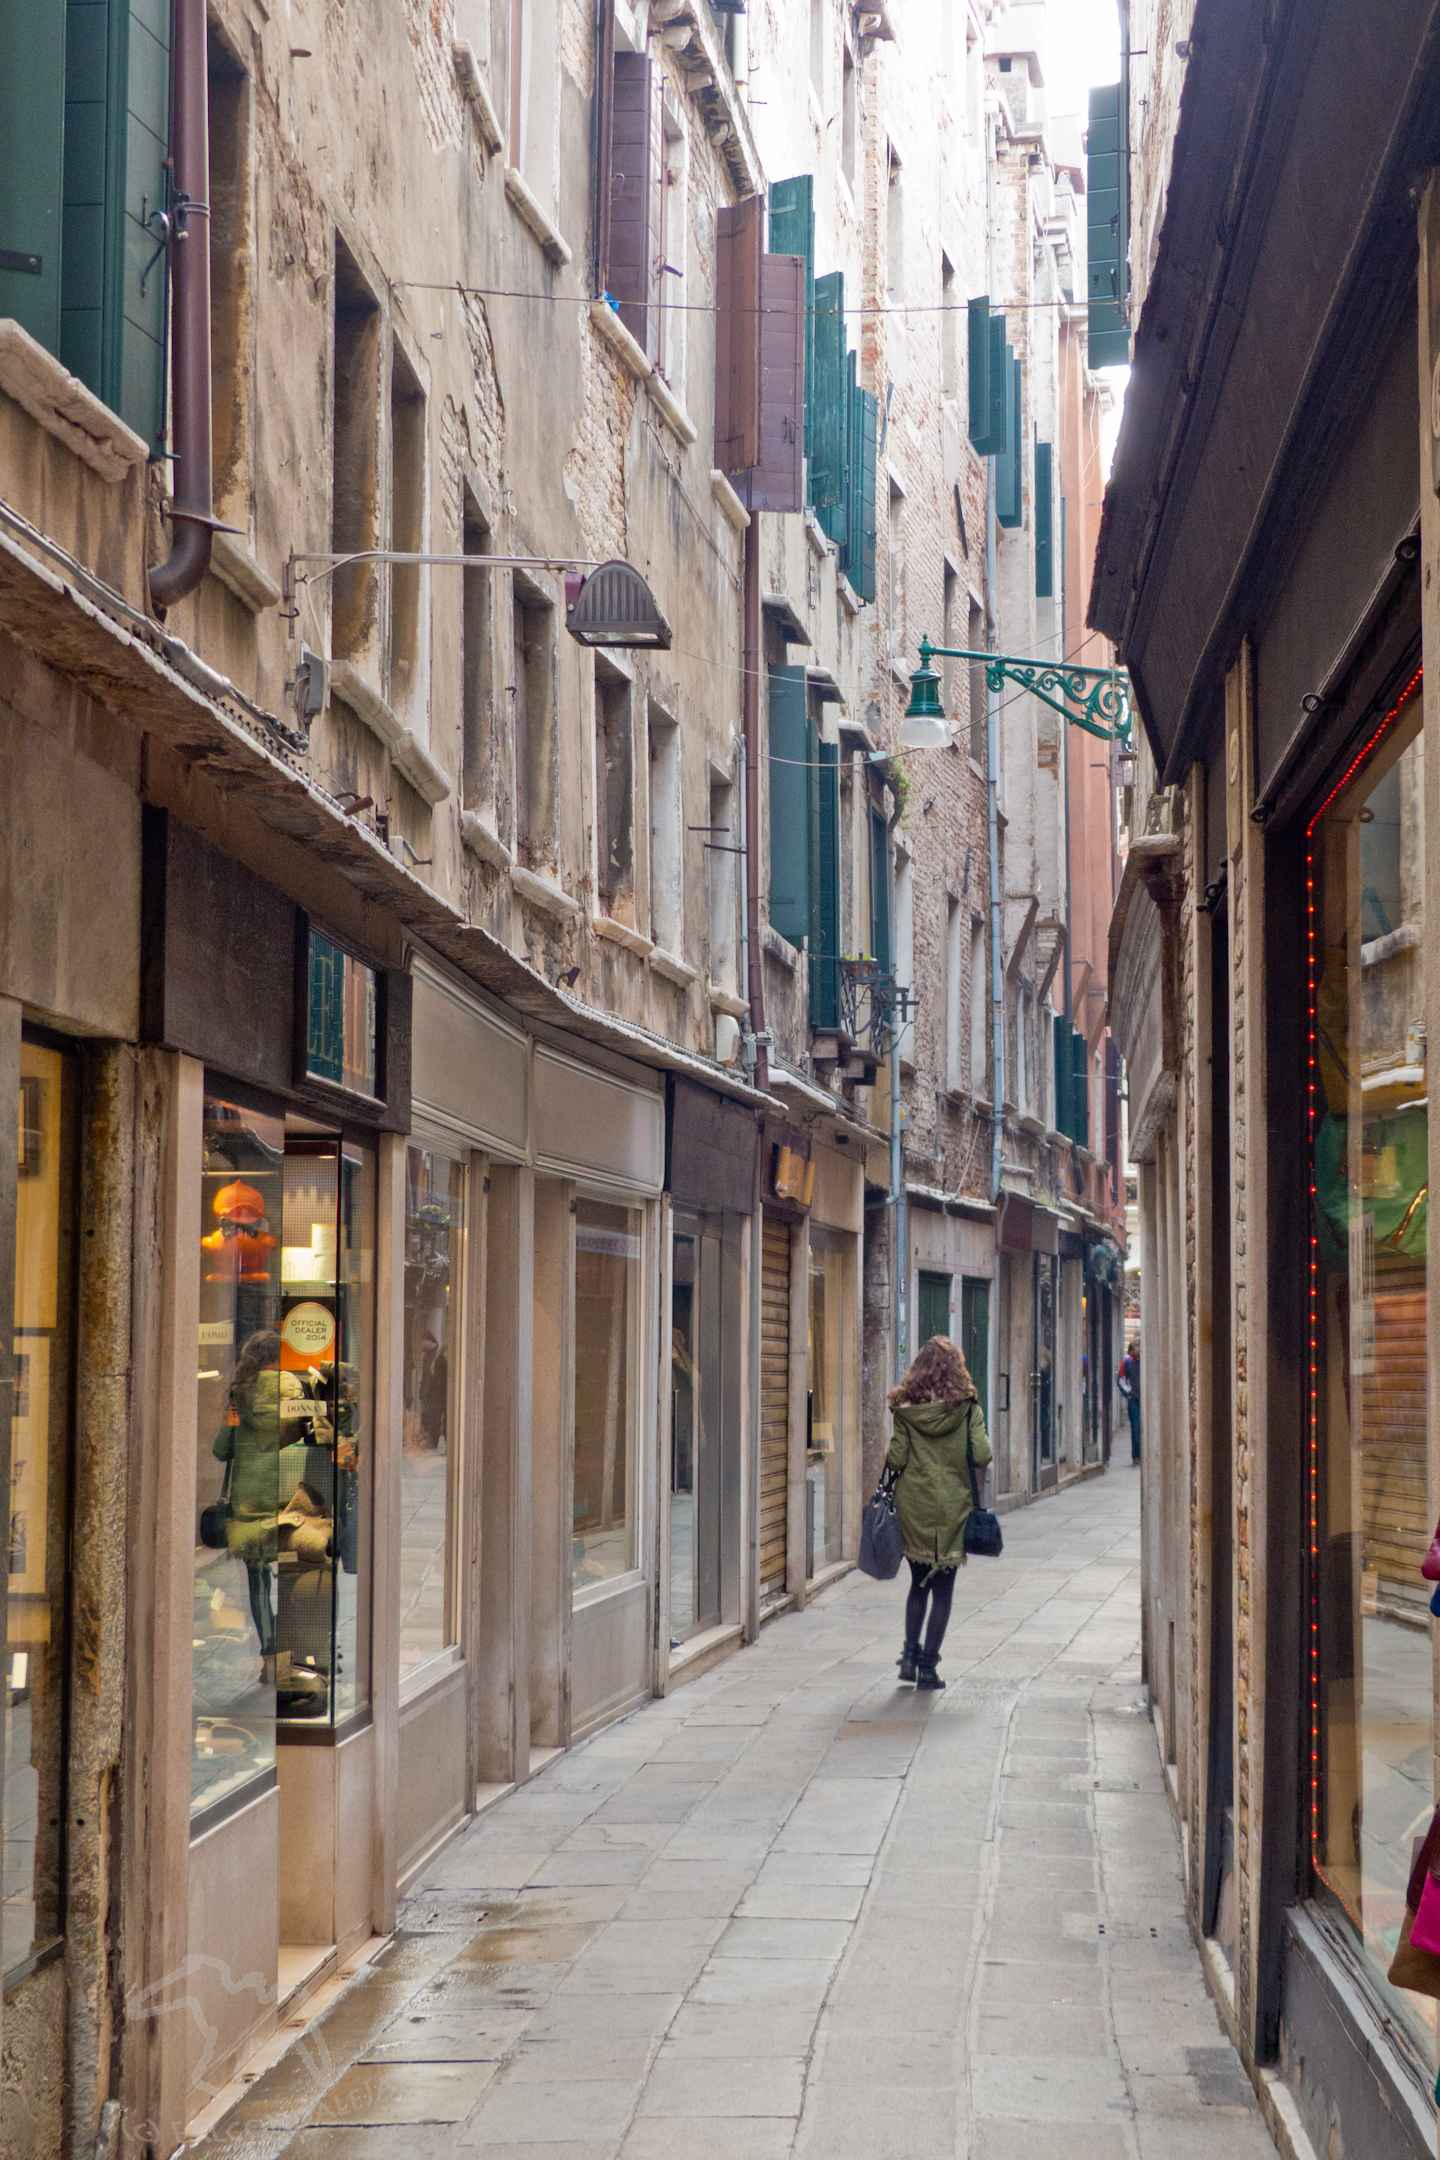 Can parents find romance in Venice with kids in tow or is it best to go without the children? Tips for Mums and Dads visiting the world's most romantic city. Plan a romantic trip to Venice with kids in tow on Falcondale Life blog. Image description: Venice paved street.